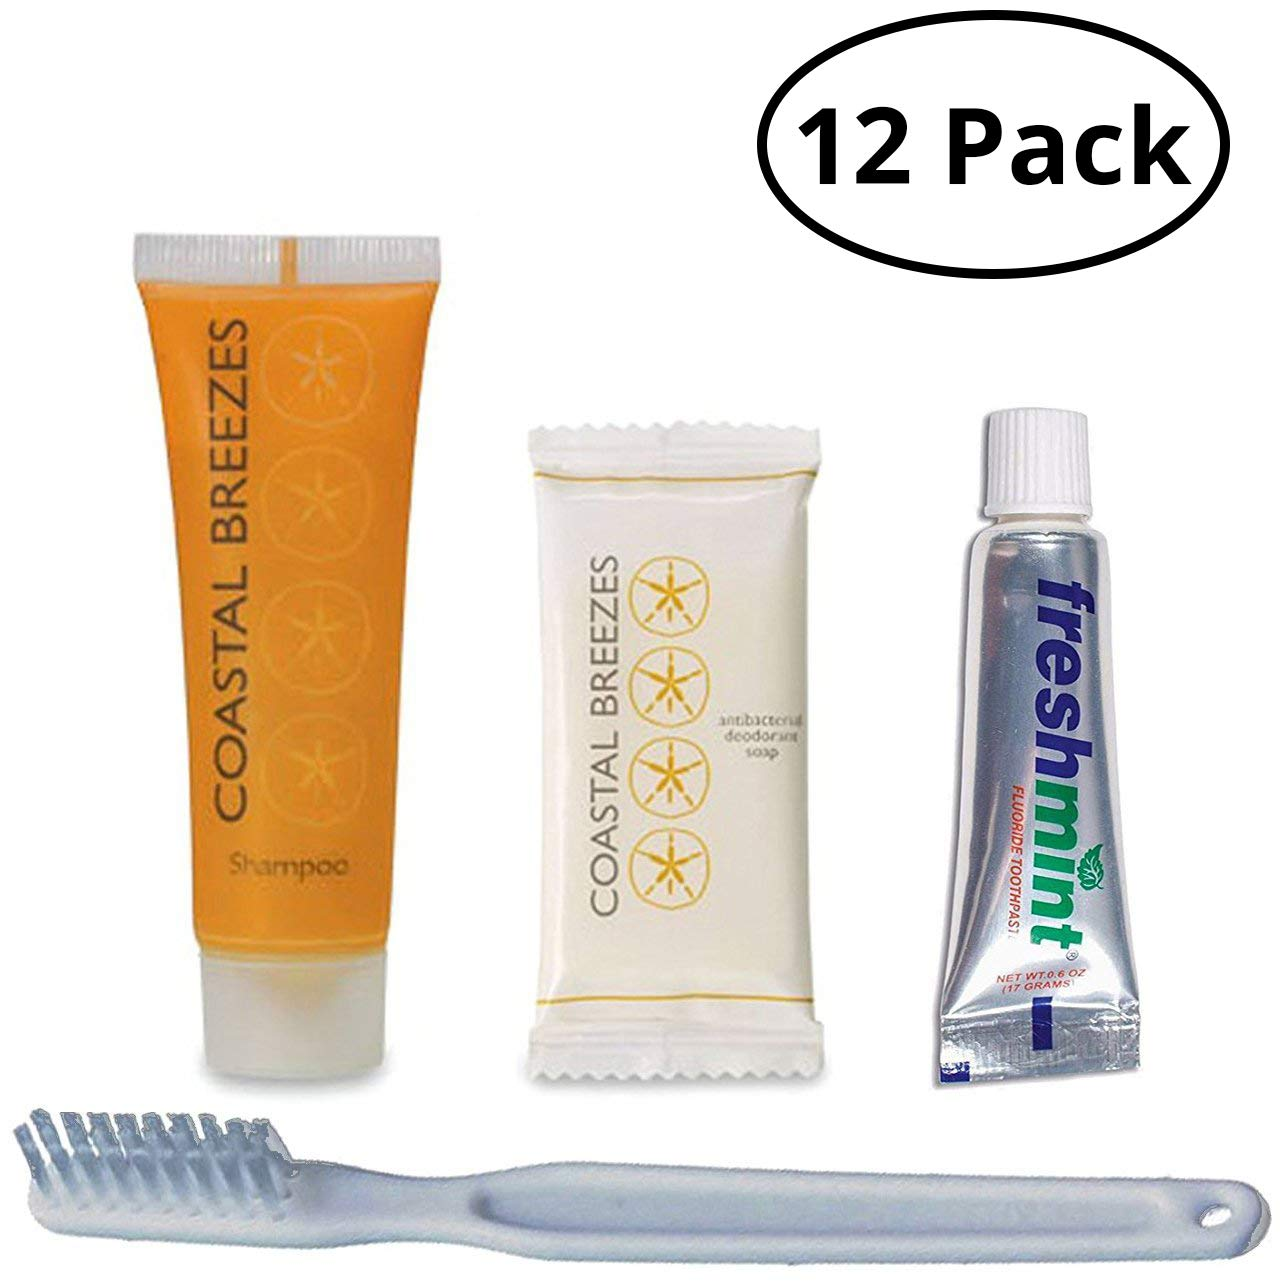 Kind Mind Travel Size Hygiene and Toiletry Kit Bulk Pack 12 Kits| Soap | Shampoo | Toothbrush| Toothpaste